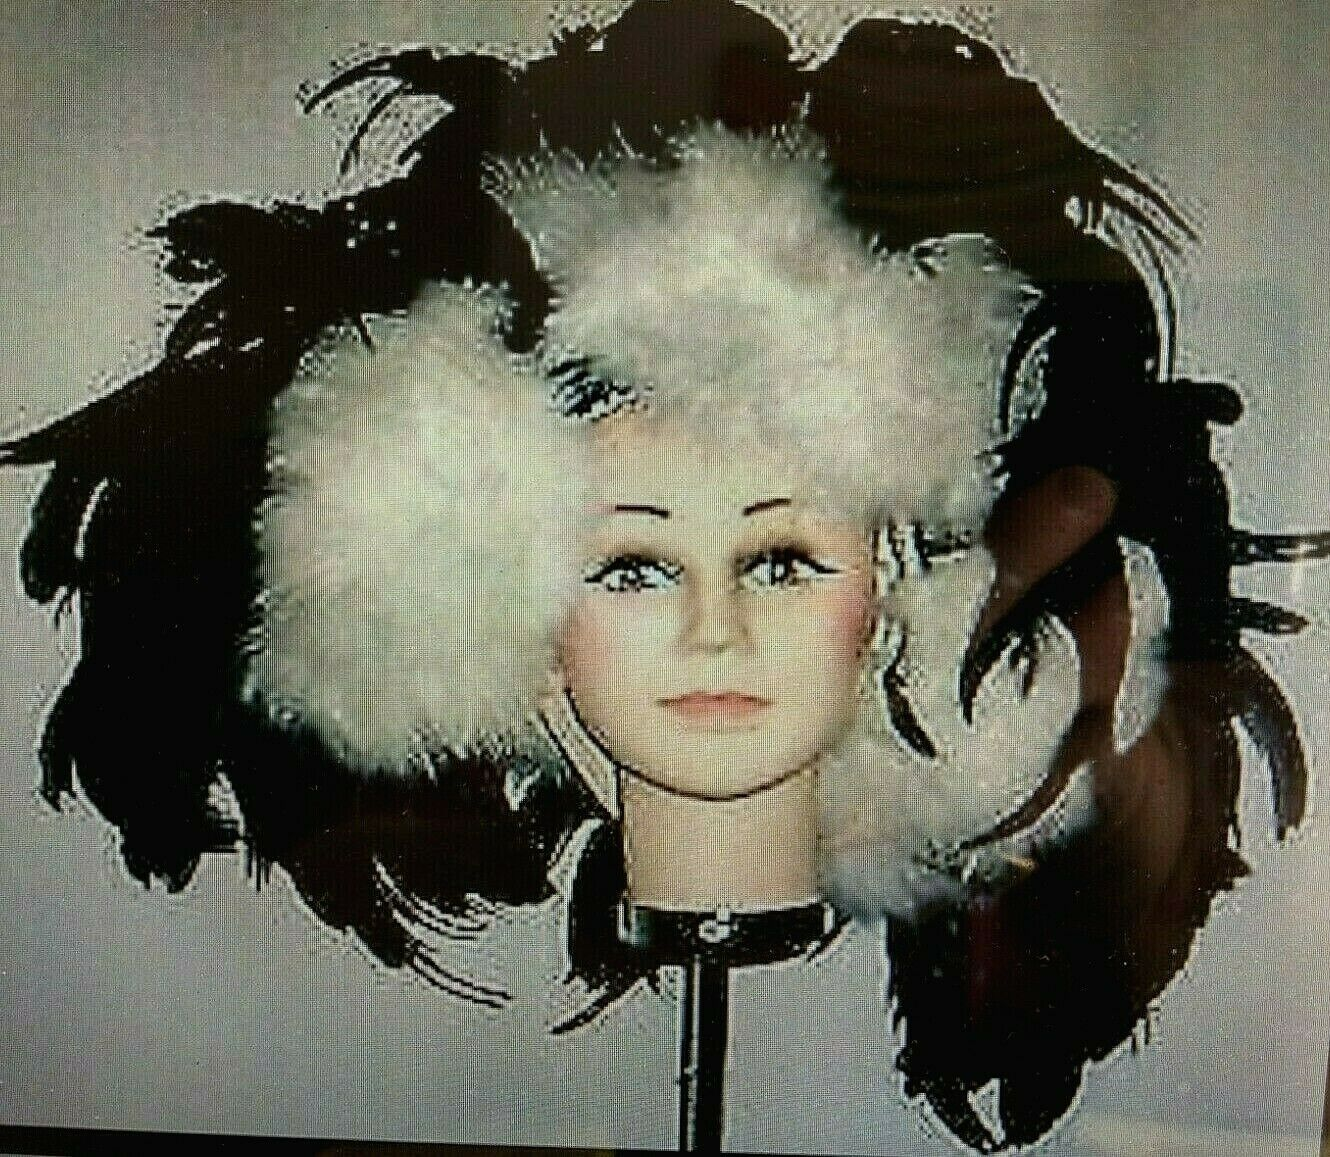 Ostrich & Couche Feathers Showgirl Headdress from Sizzle Show in Black n White